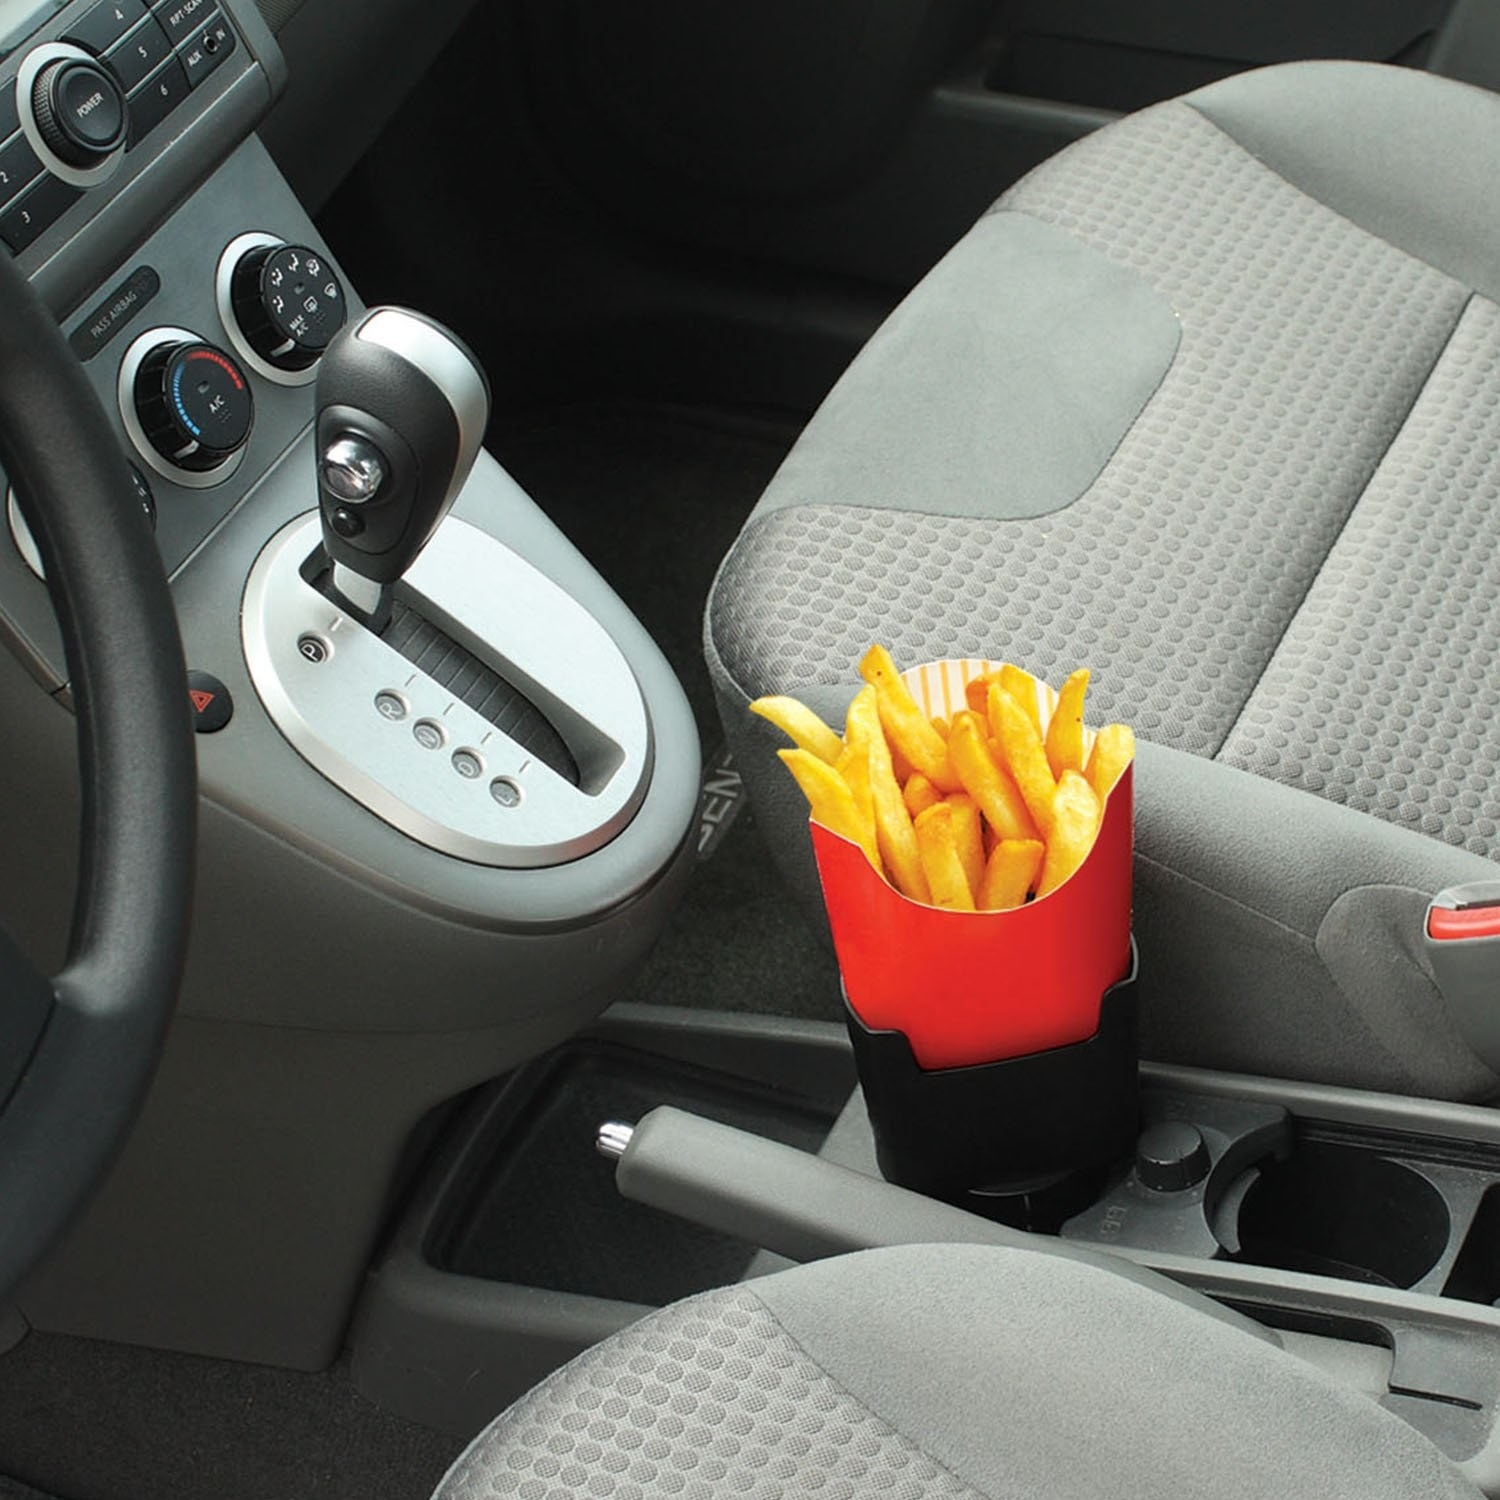 A packet of fries being held in the holder, which is placed inside a car cupholder